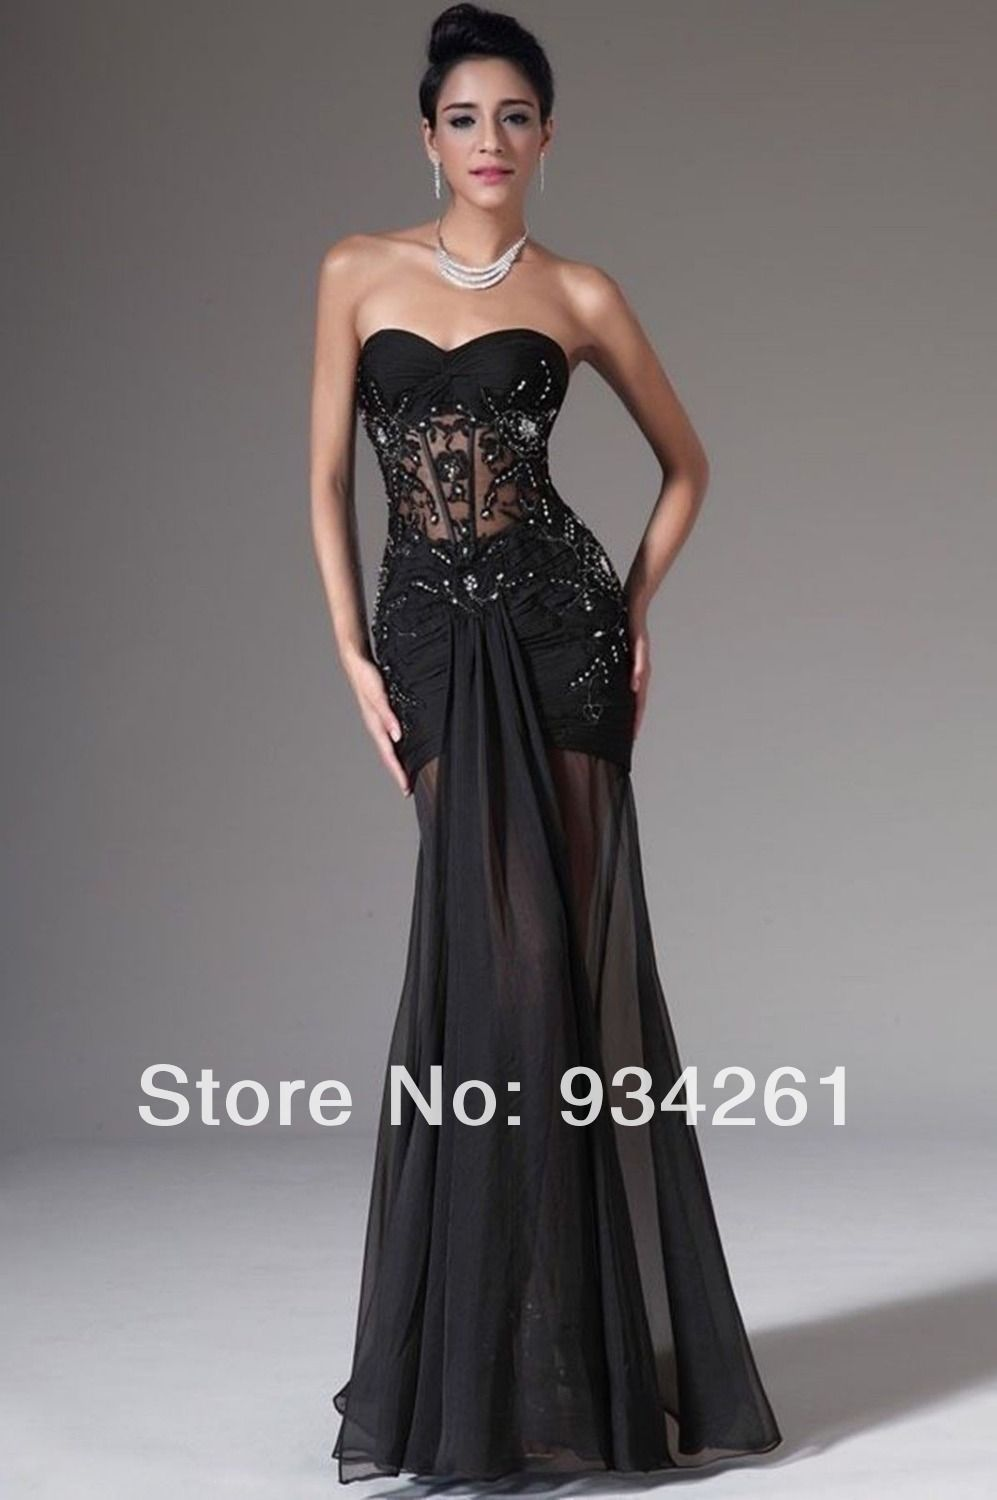 Long dresses to wear to a wedding  Sexy Black Cocktail Dress Party Formal Evening Ball Prom Dresses